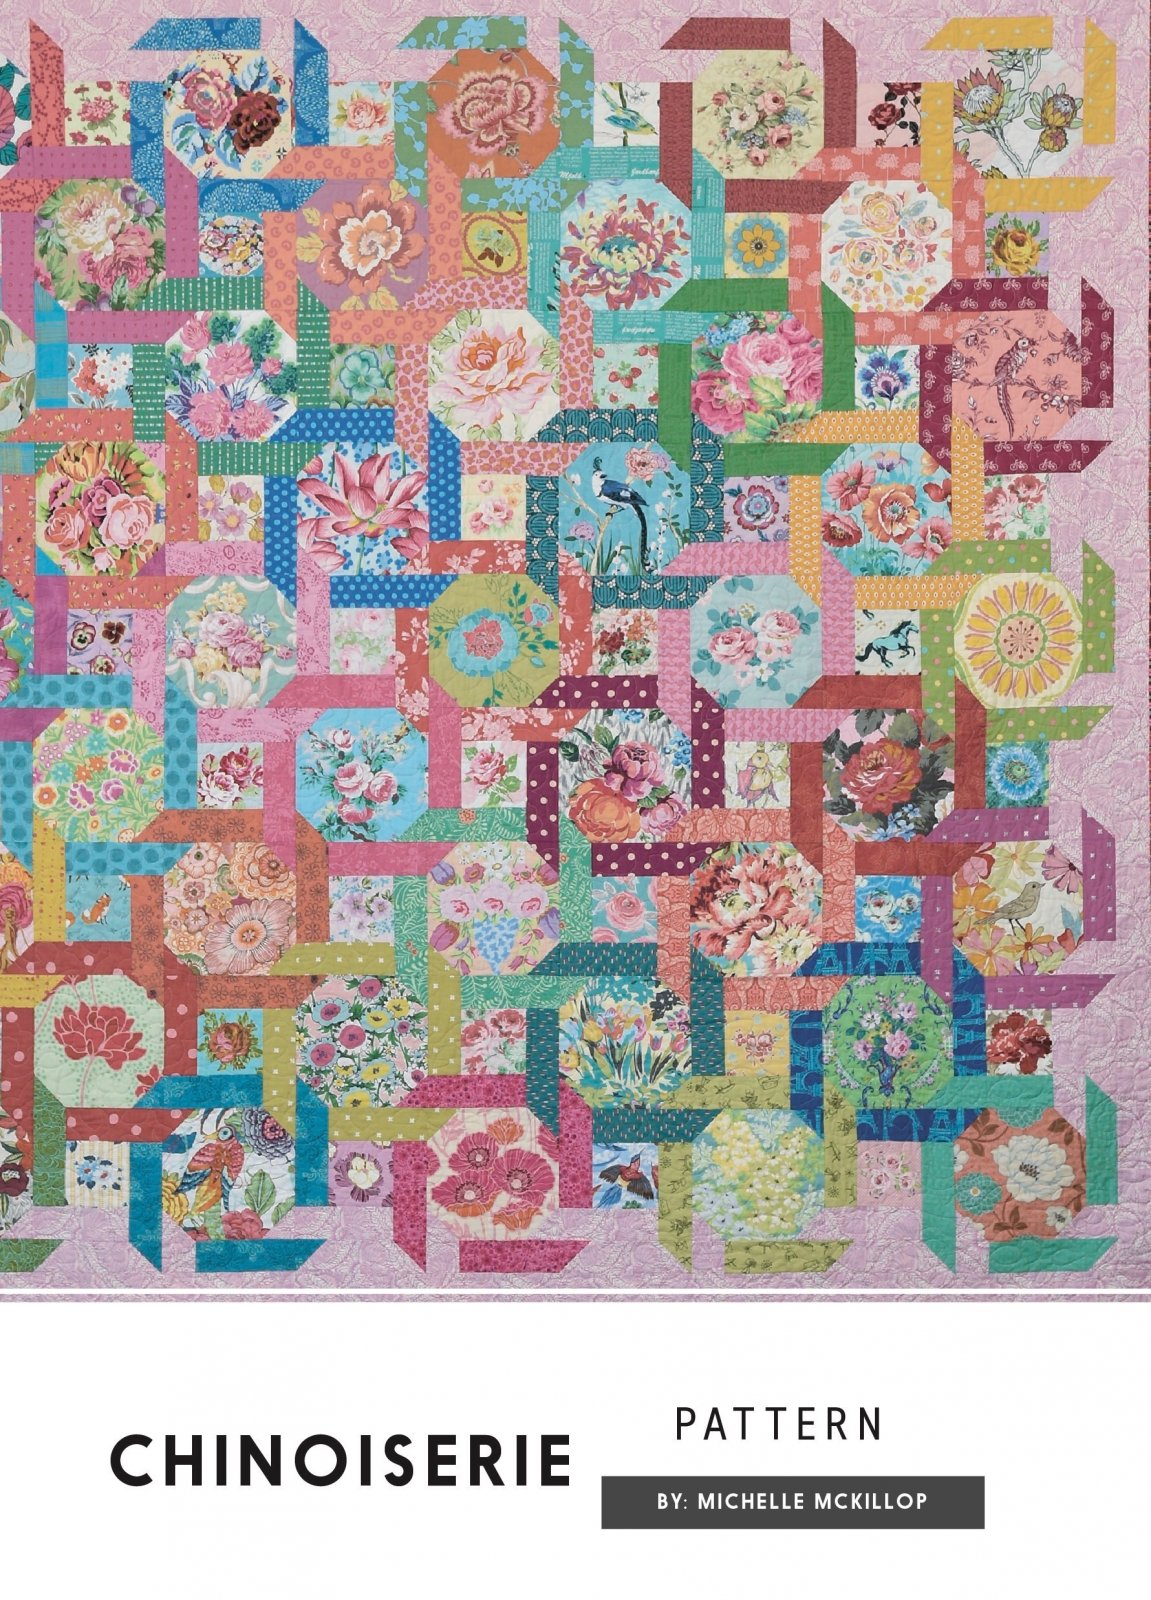 Chinoiserie Pattern by Michelle McKillop